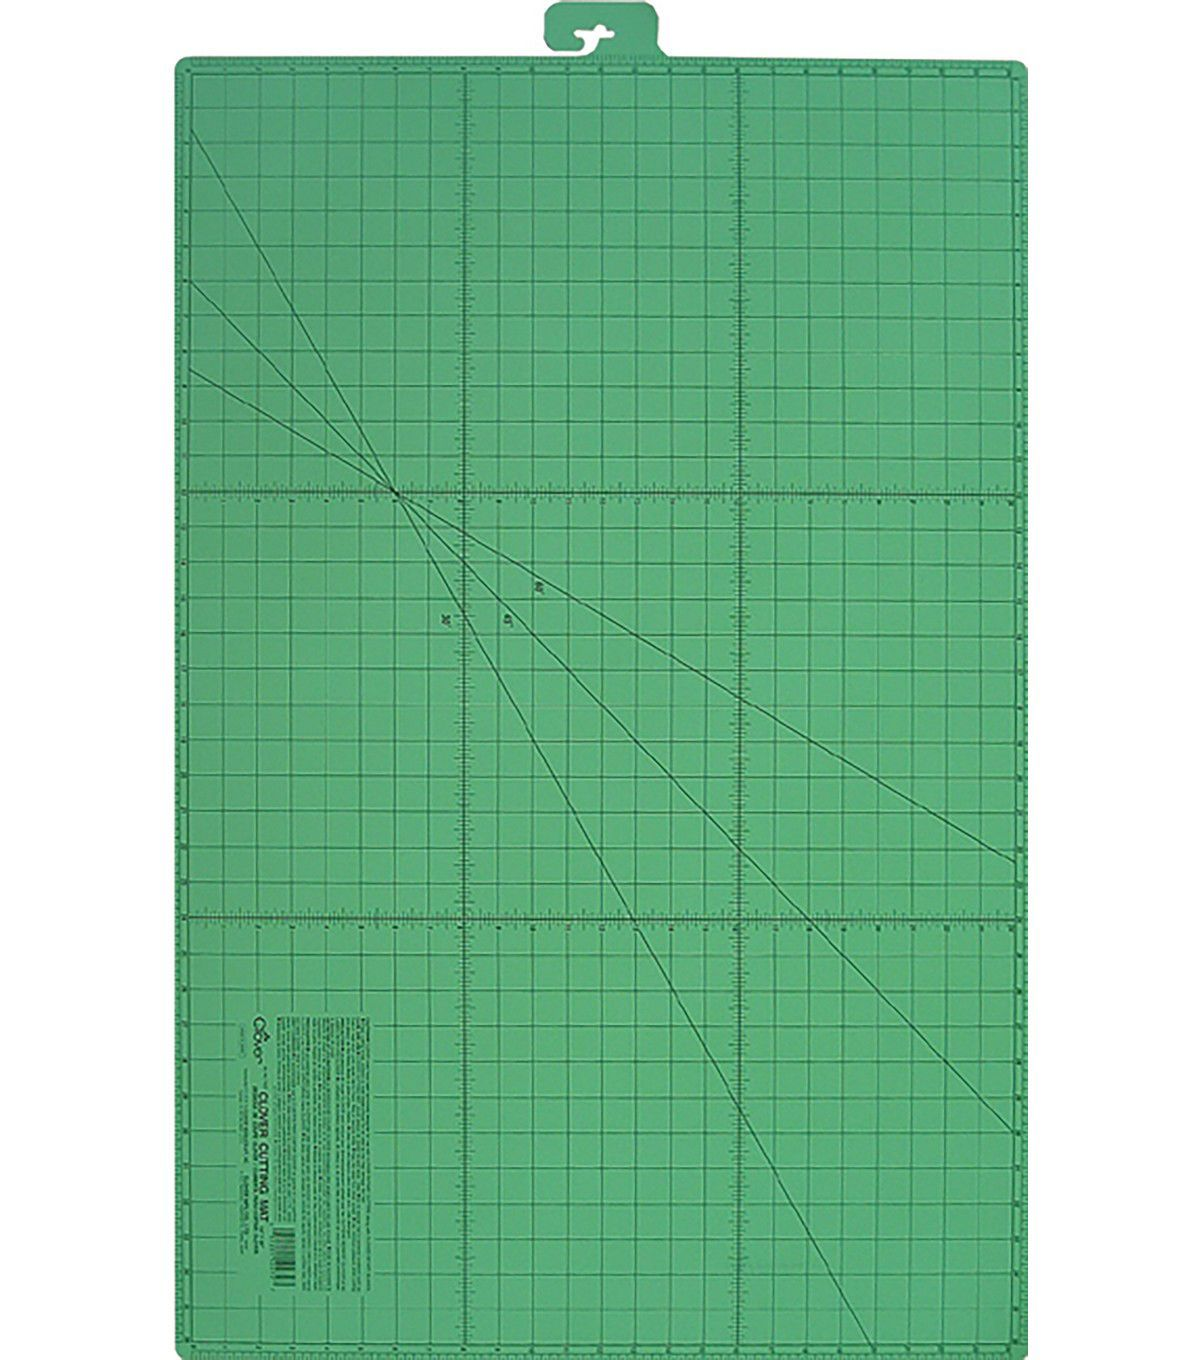 Clover Triple Layer Self Healing Cutting Mat Large 24 X36